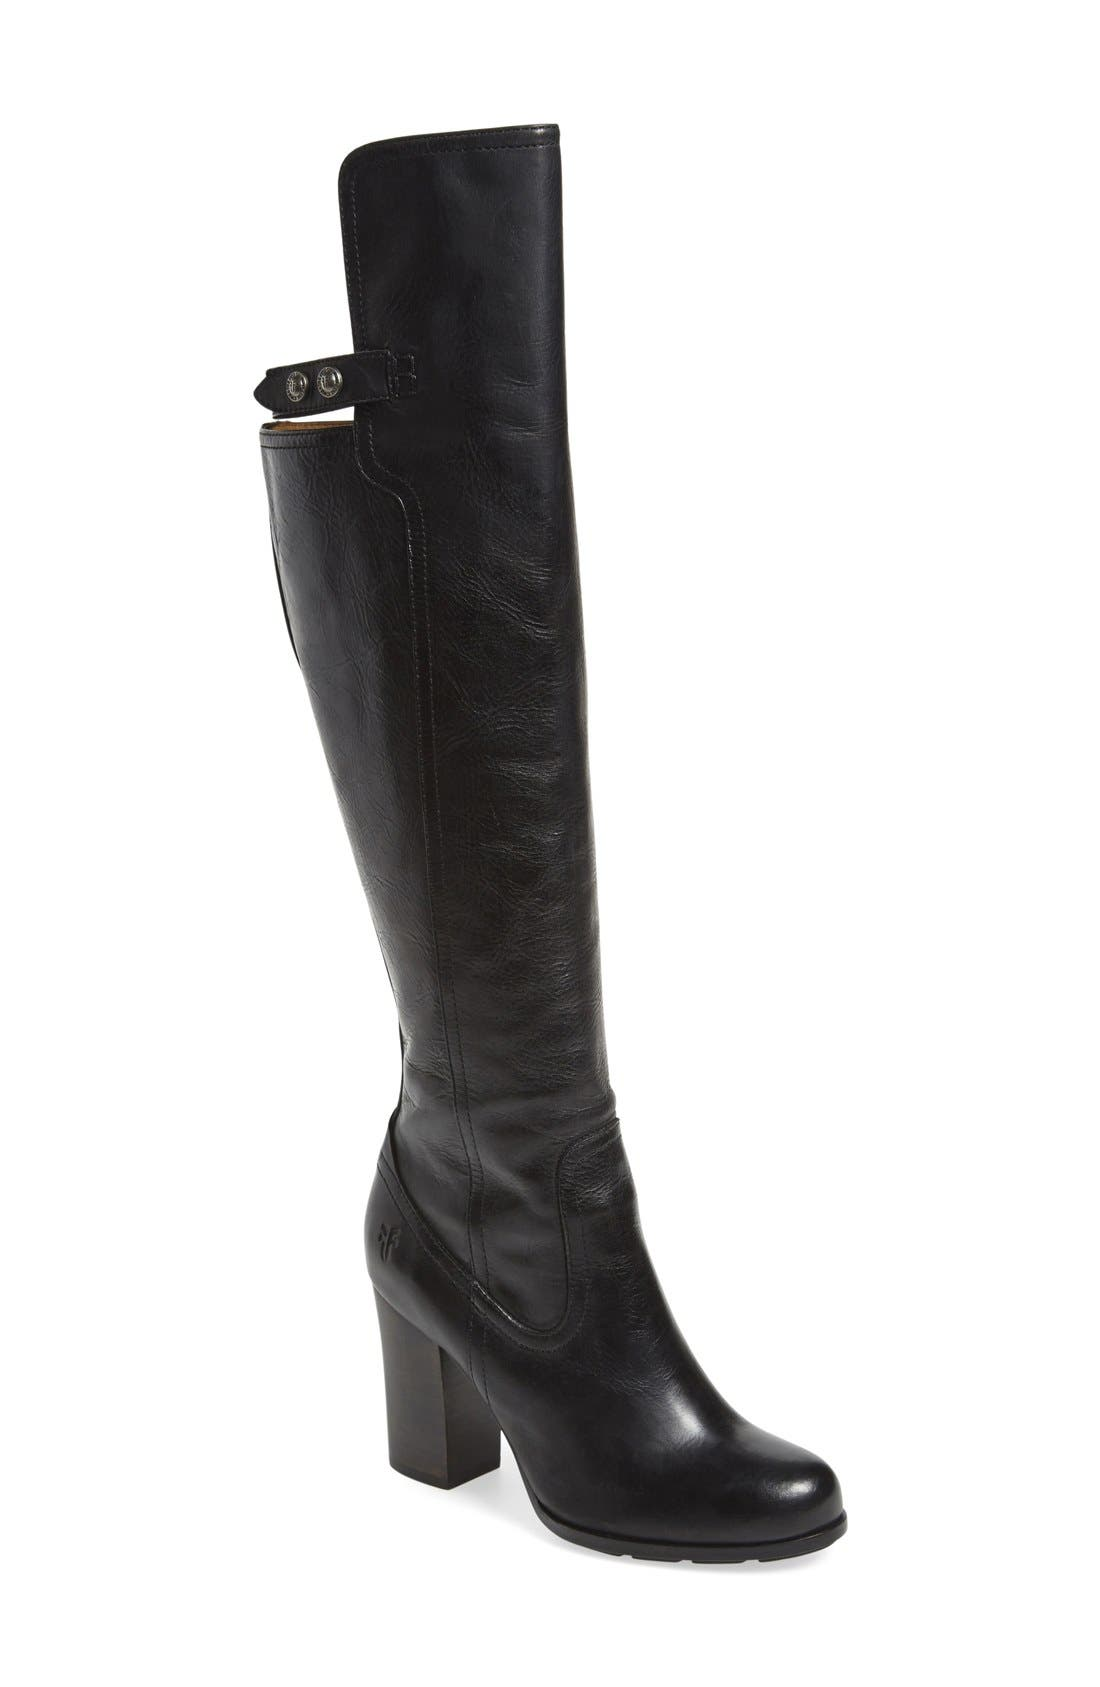 Alternate Image 1 Selected - Frye 'Parker' Over the Knee Boot (Women)